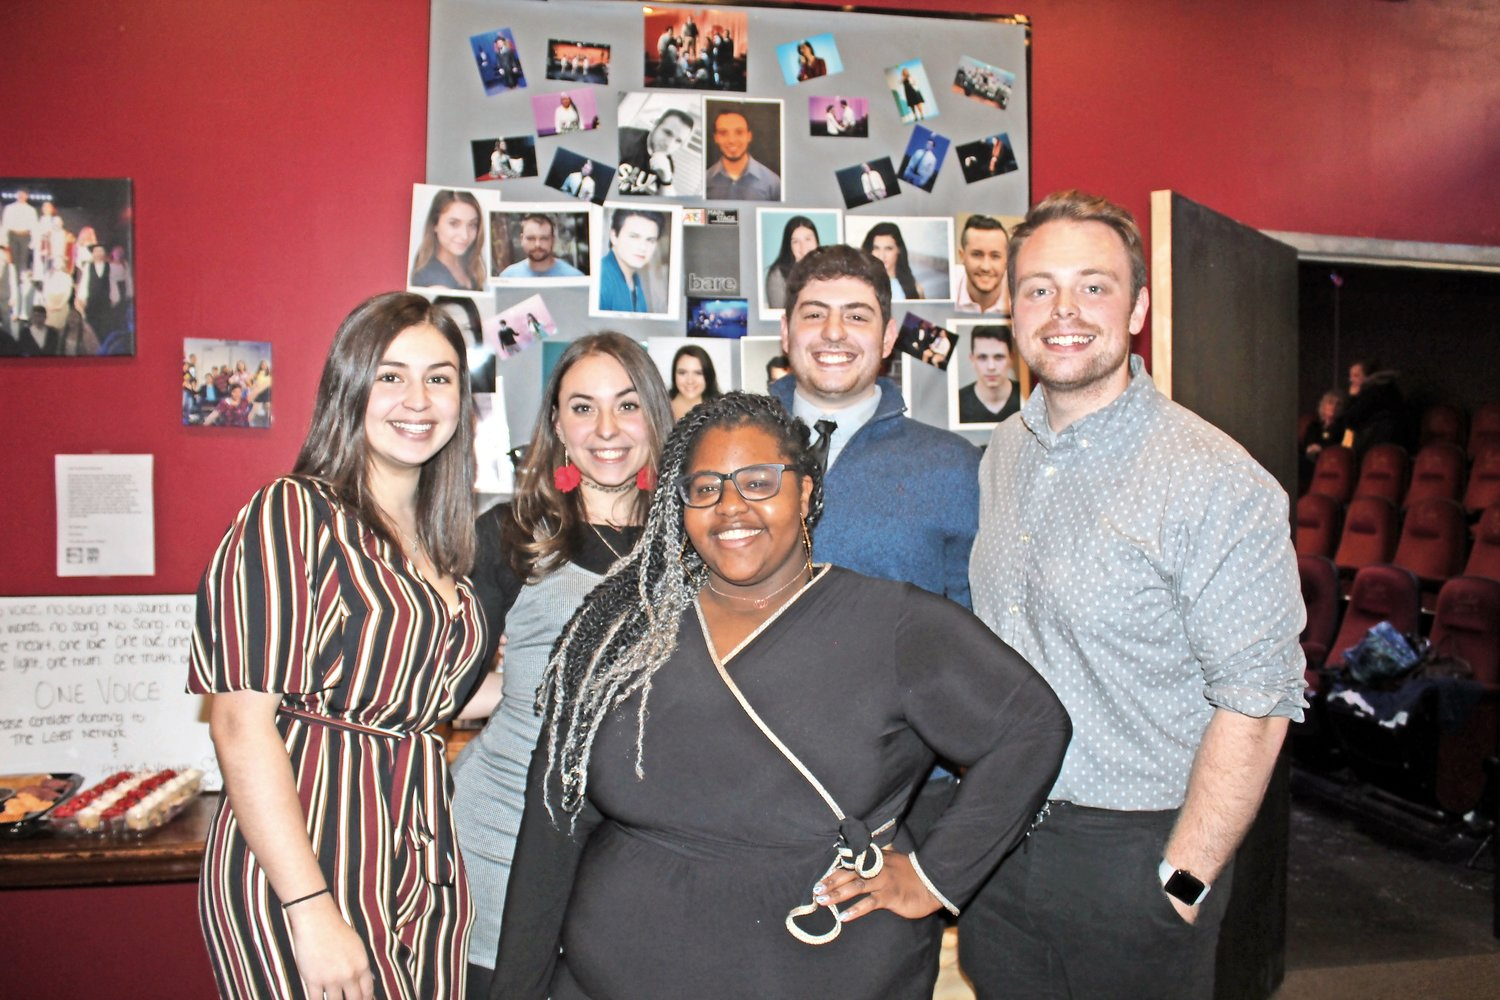 Kathryn Paidoussis, left, Sydnee LaBuda, Janelle Primm, Jared Grossman and Sean Ryan were excited to kick off the grand opening of Cultural Arts Playhouse Merrick.